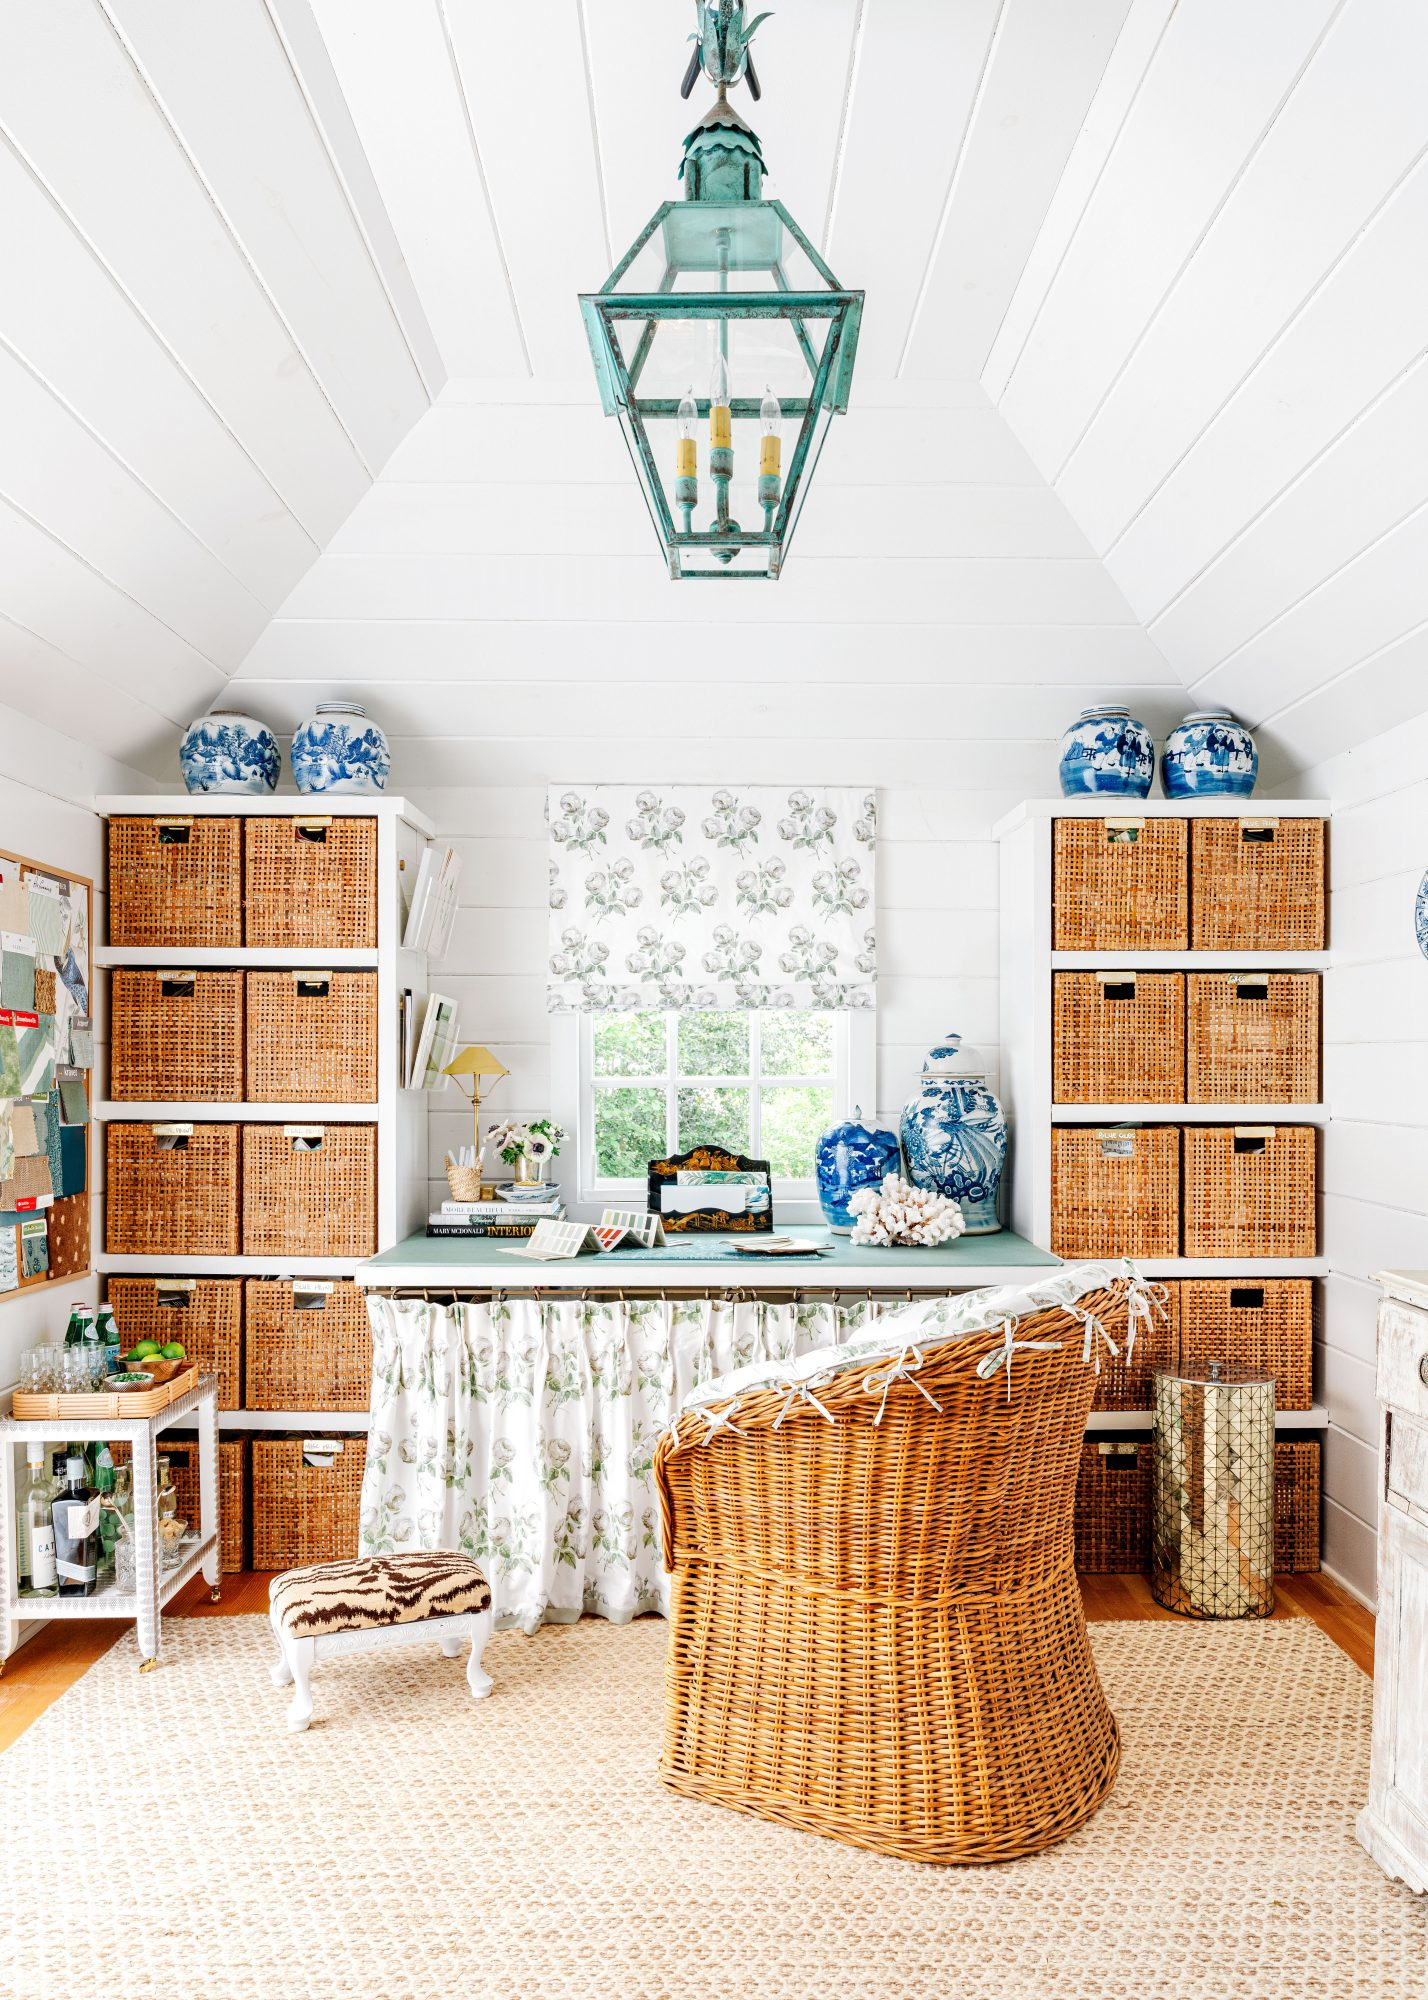 Hillbrook Collections' Garden Shed Office Space with Built-in Desk